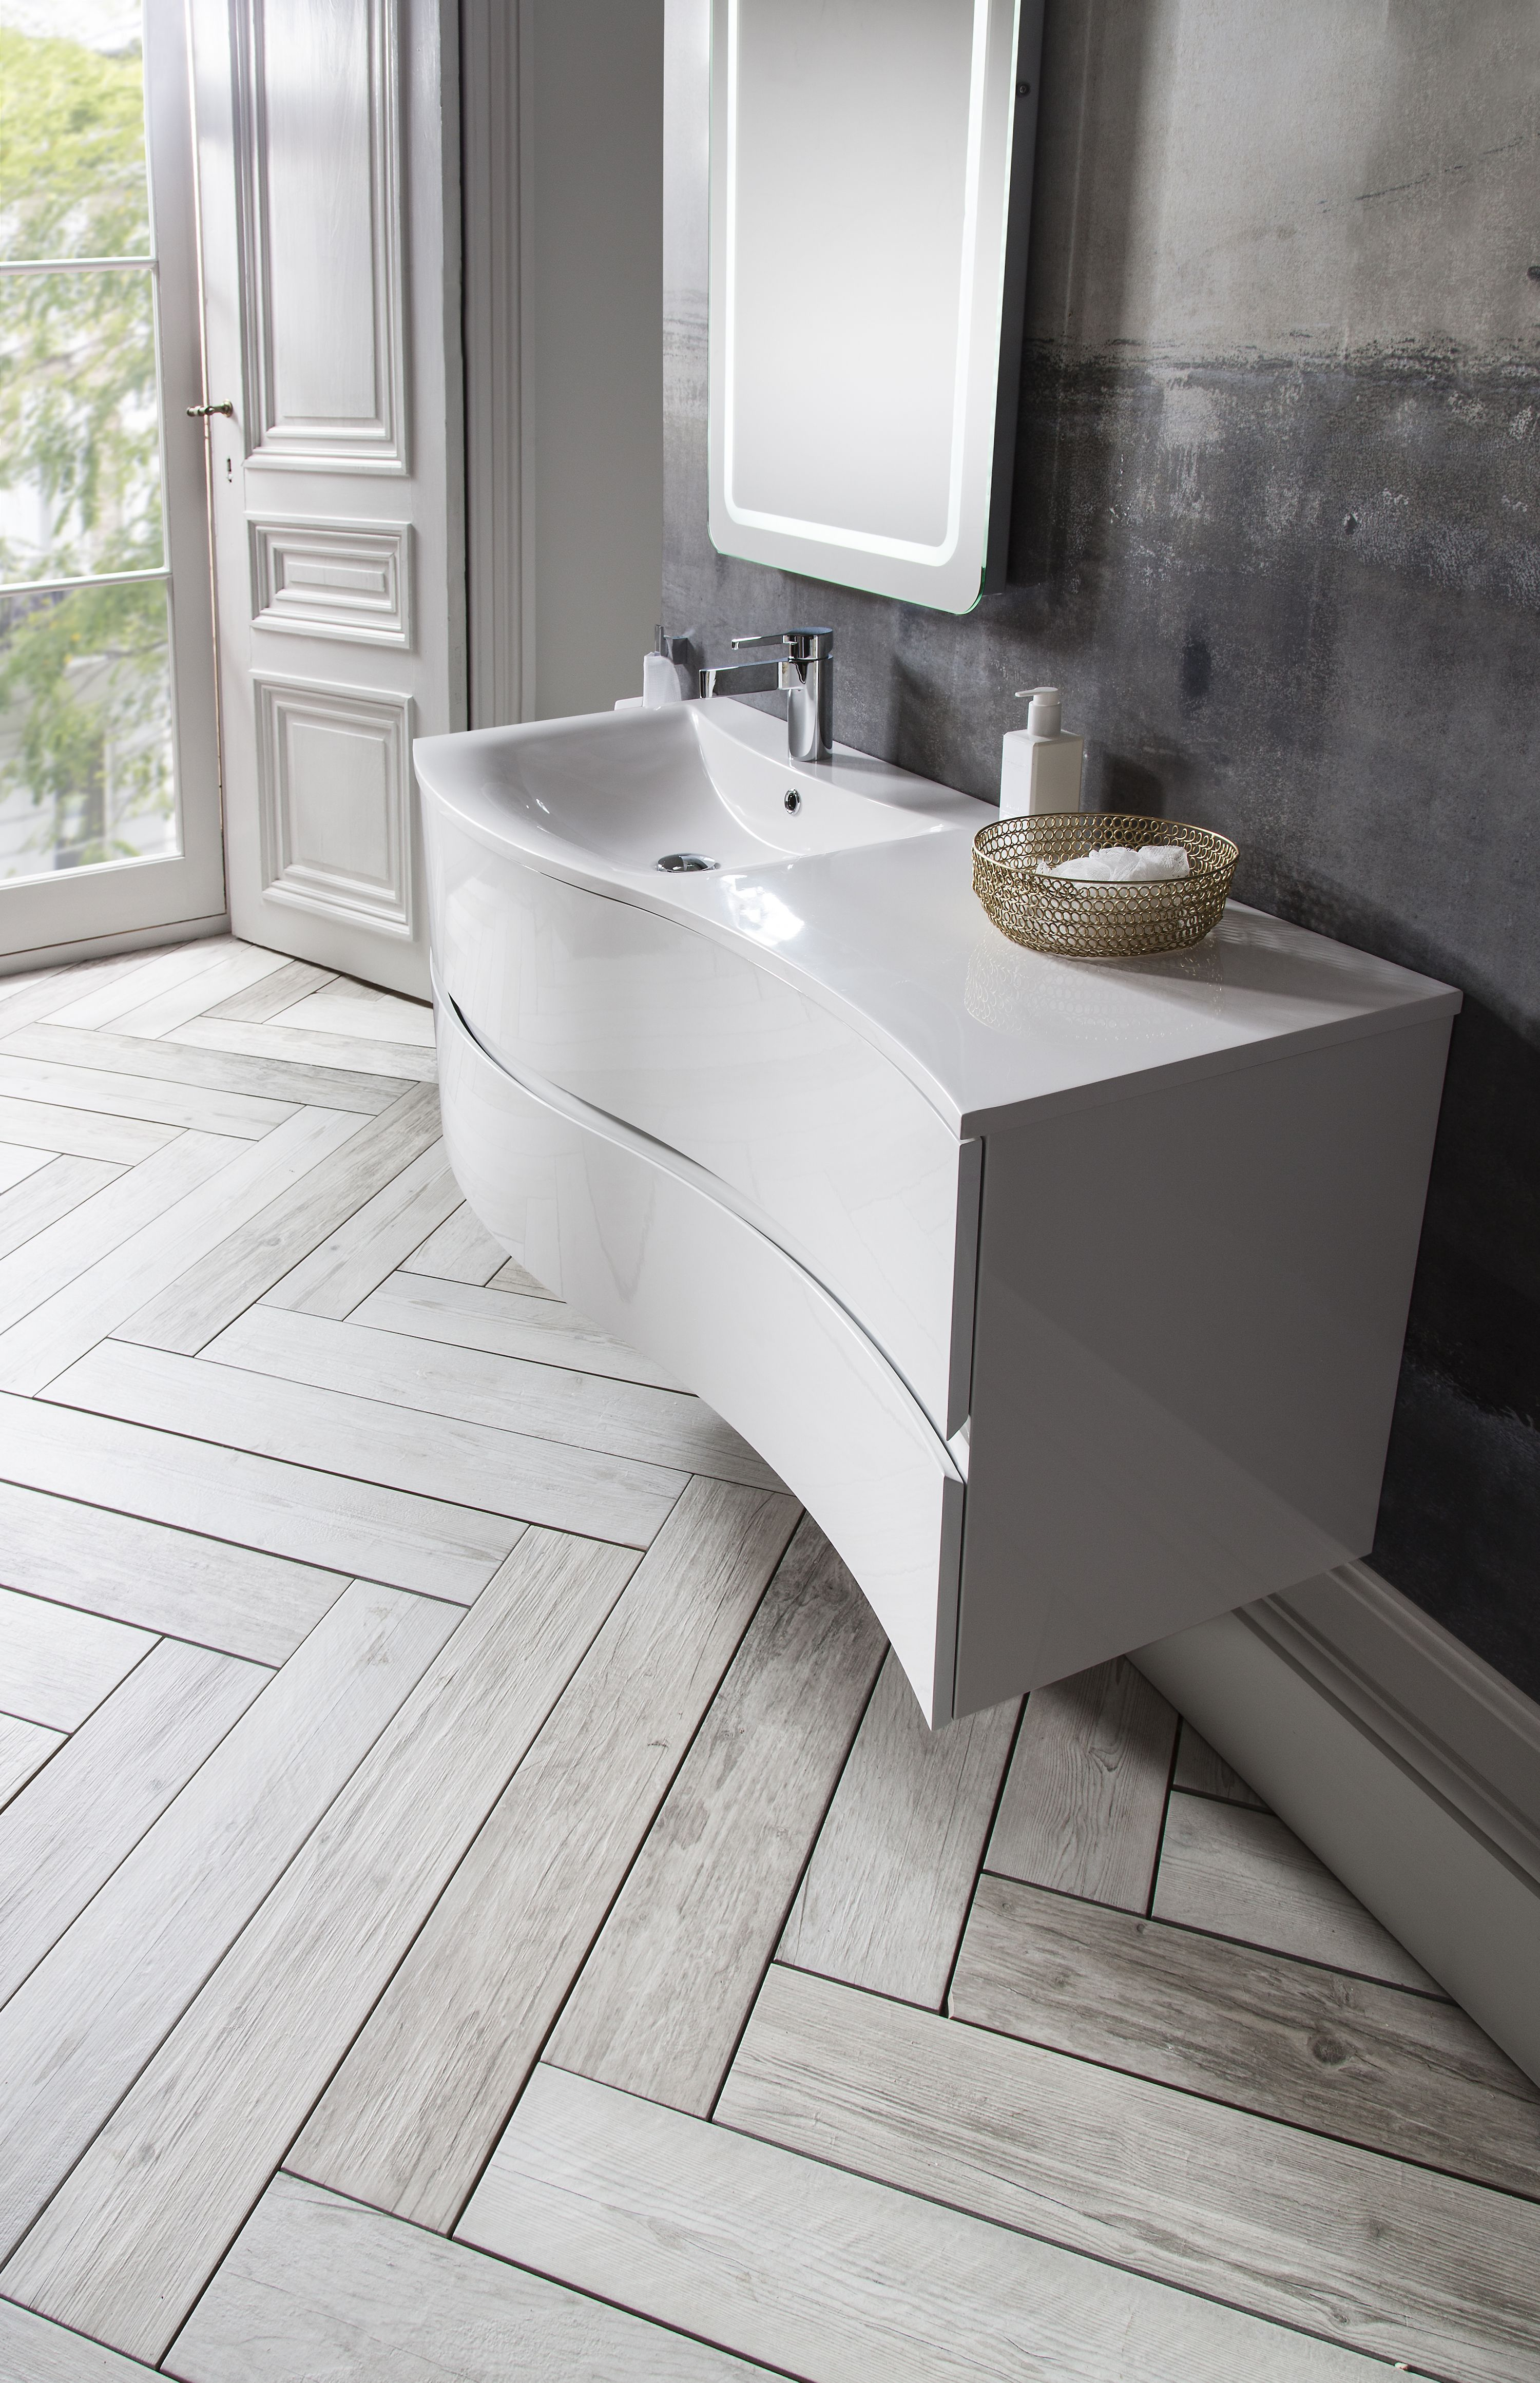 Up To The Minute Technology Soft Close Drawer Runners Provide Gentle Smooth Quiet Closure Bathroom Vanity Units Basin Vanity Unit Bathroom Vanity Units Uk